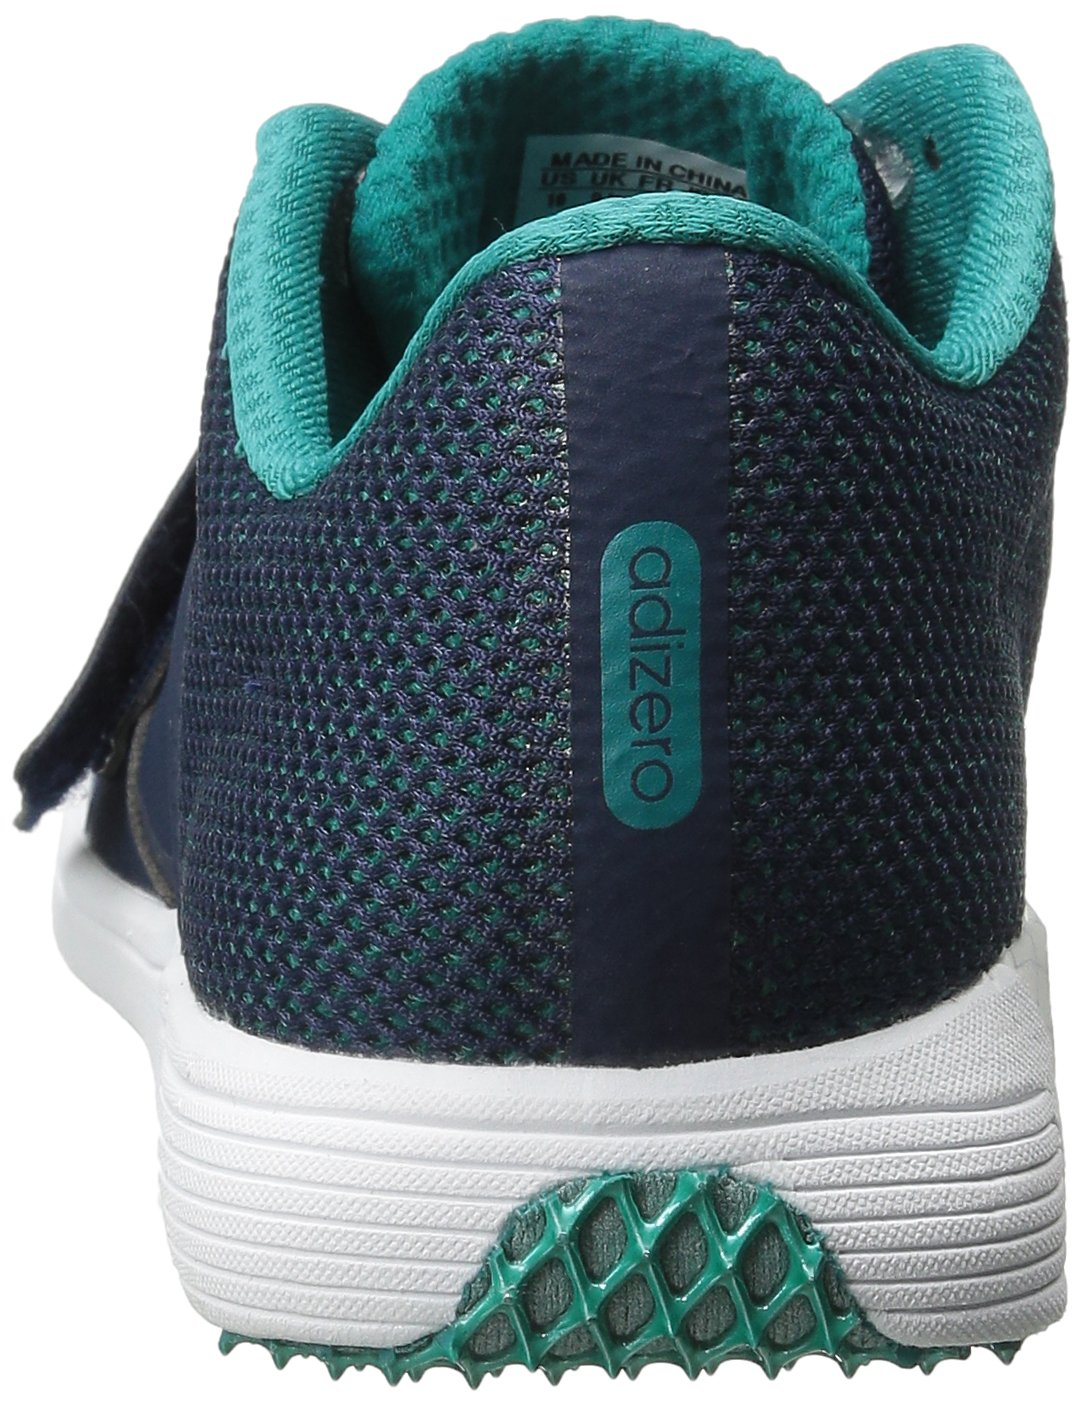 adidas Performance Women's Adizero TJ/PV Running Shoe with Spikes,Collegiate Navy/White/Green,14 M US by adidas (Image #2)